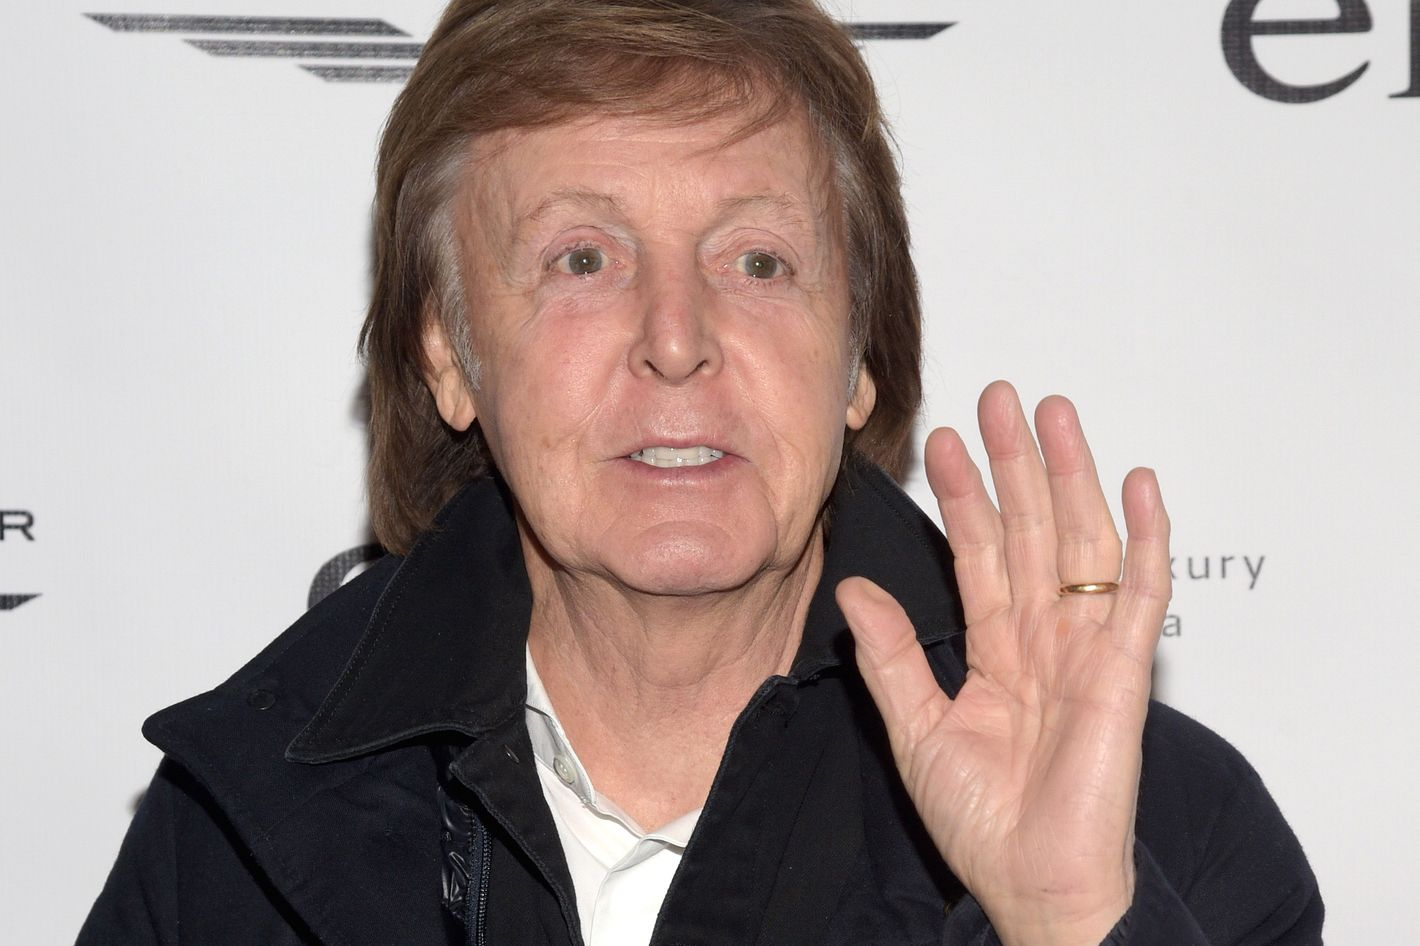 Paul McCartney In His Never Ending Battle For The Rights To Beatles Songs Is Suing Sony